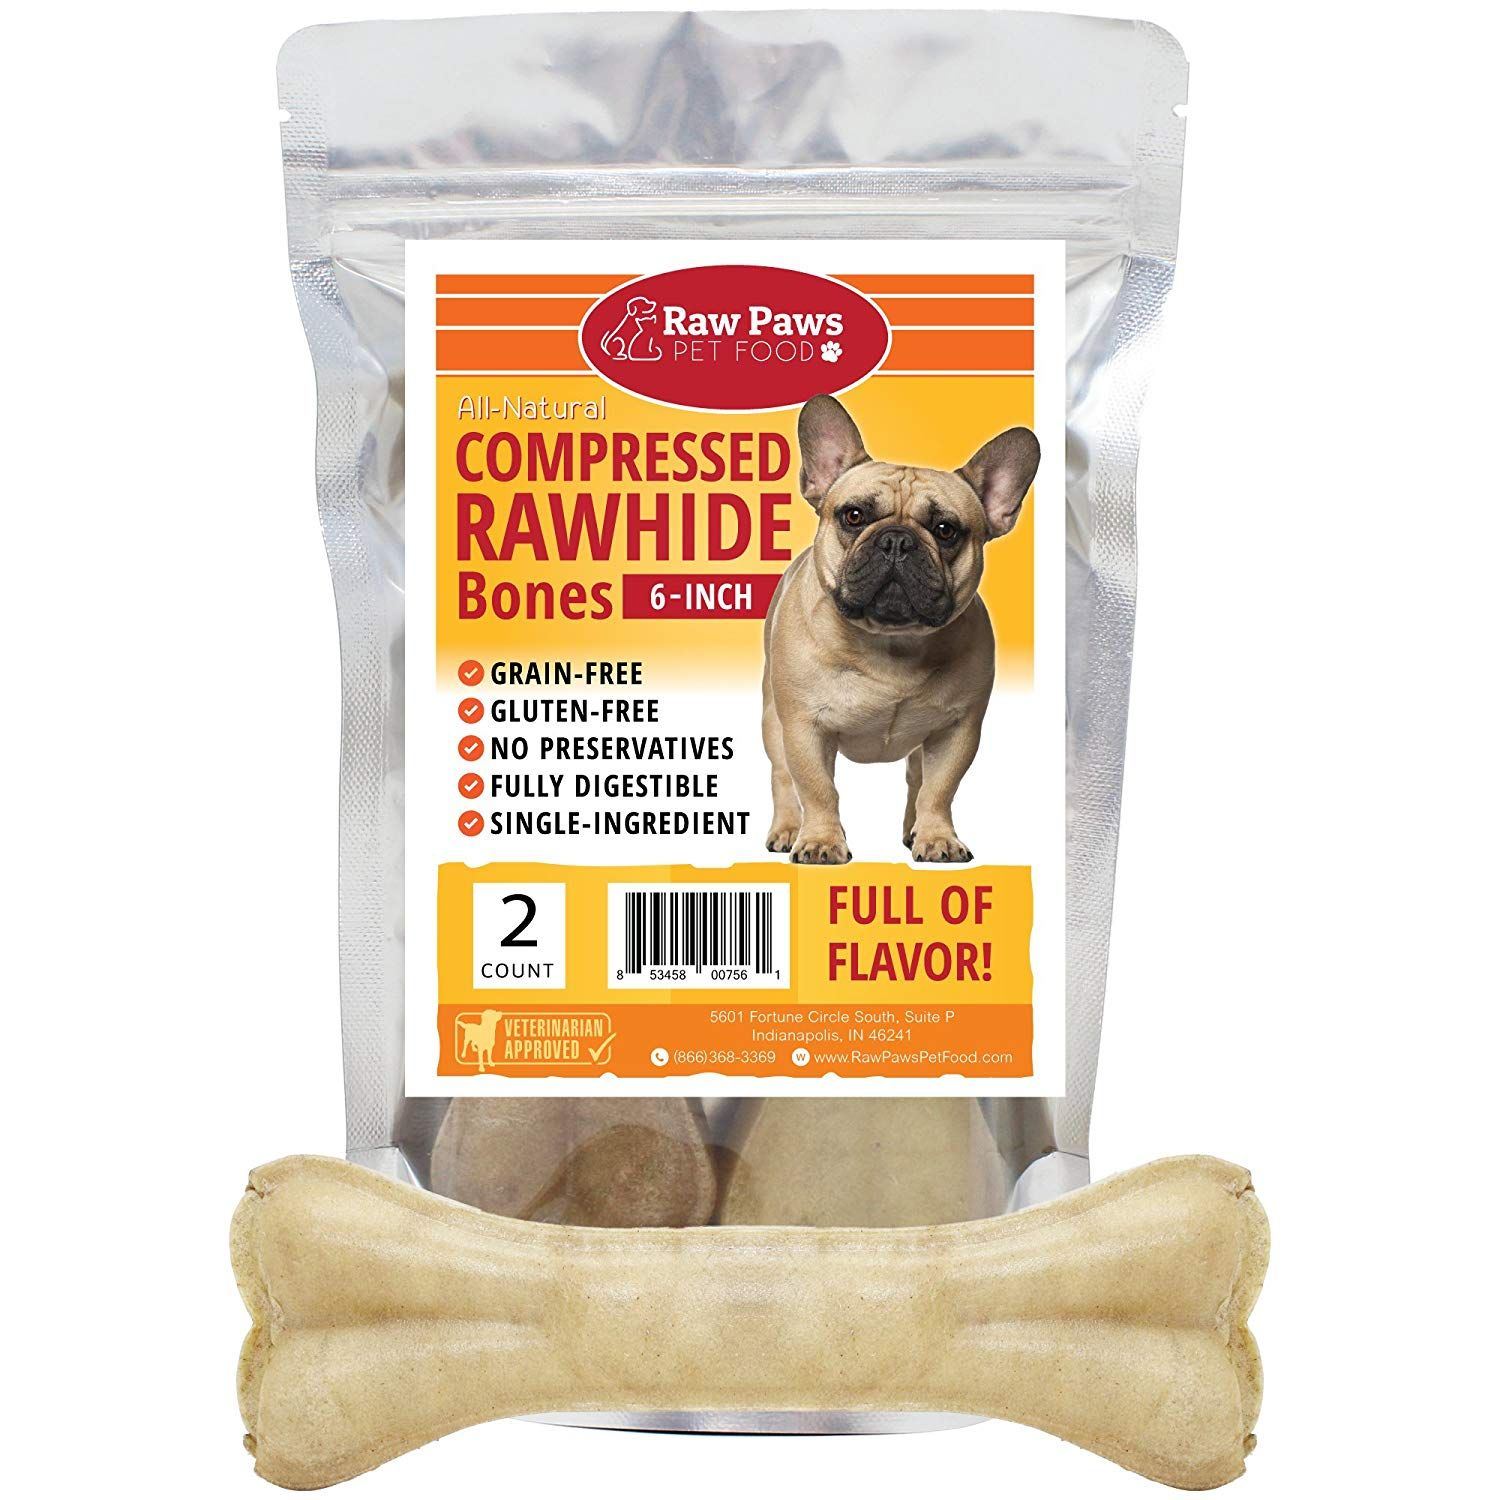 Raw Paws Pet Premium 6 Inch Compressed Rawhide Bones For Dogs